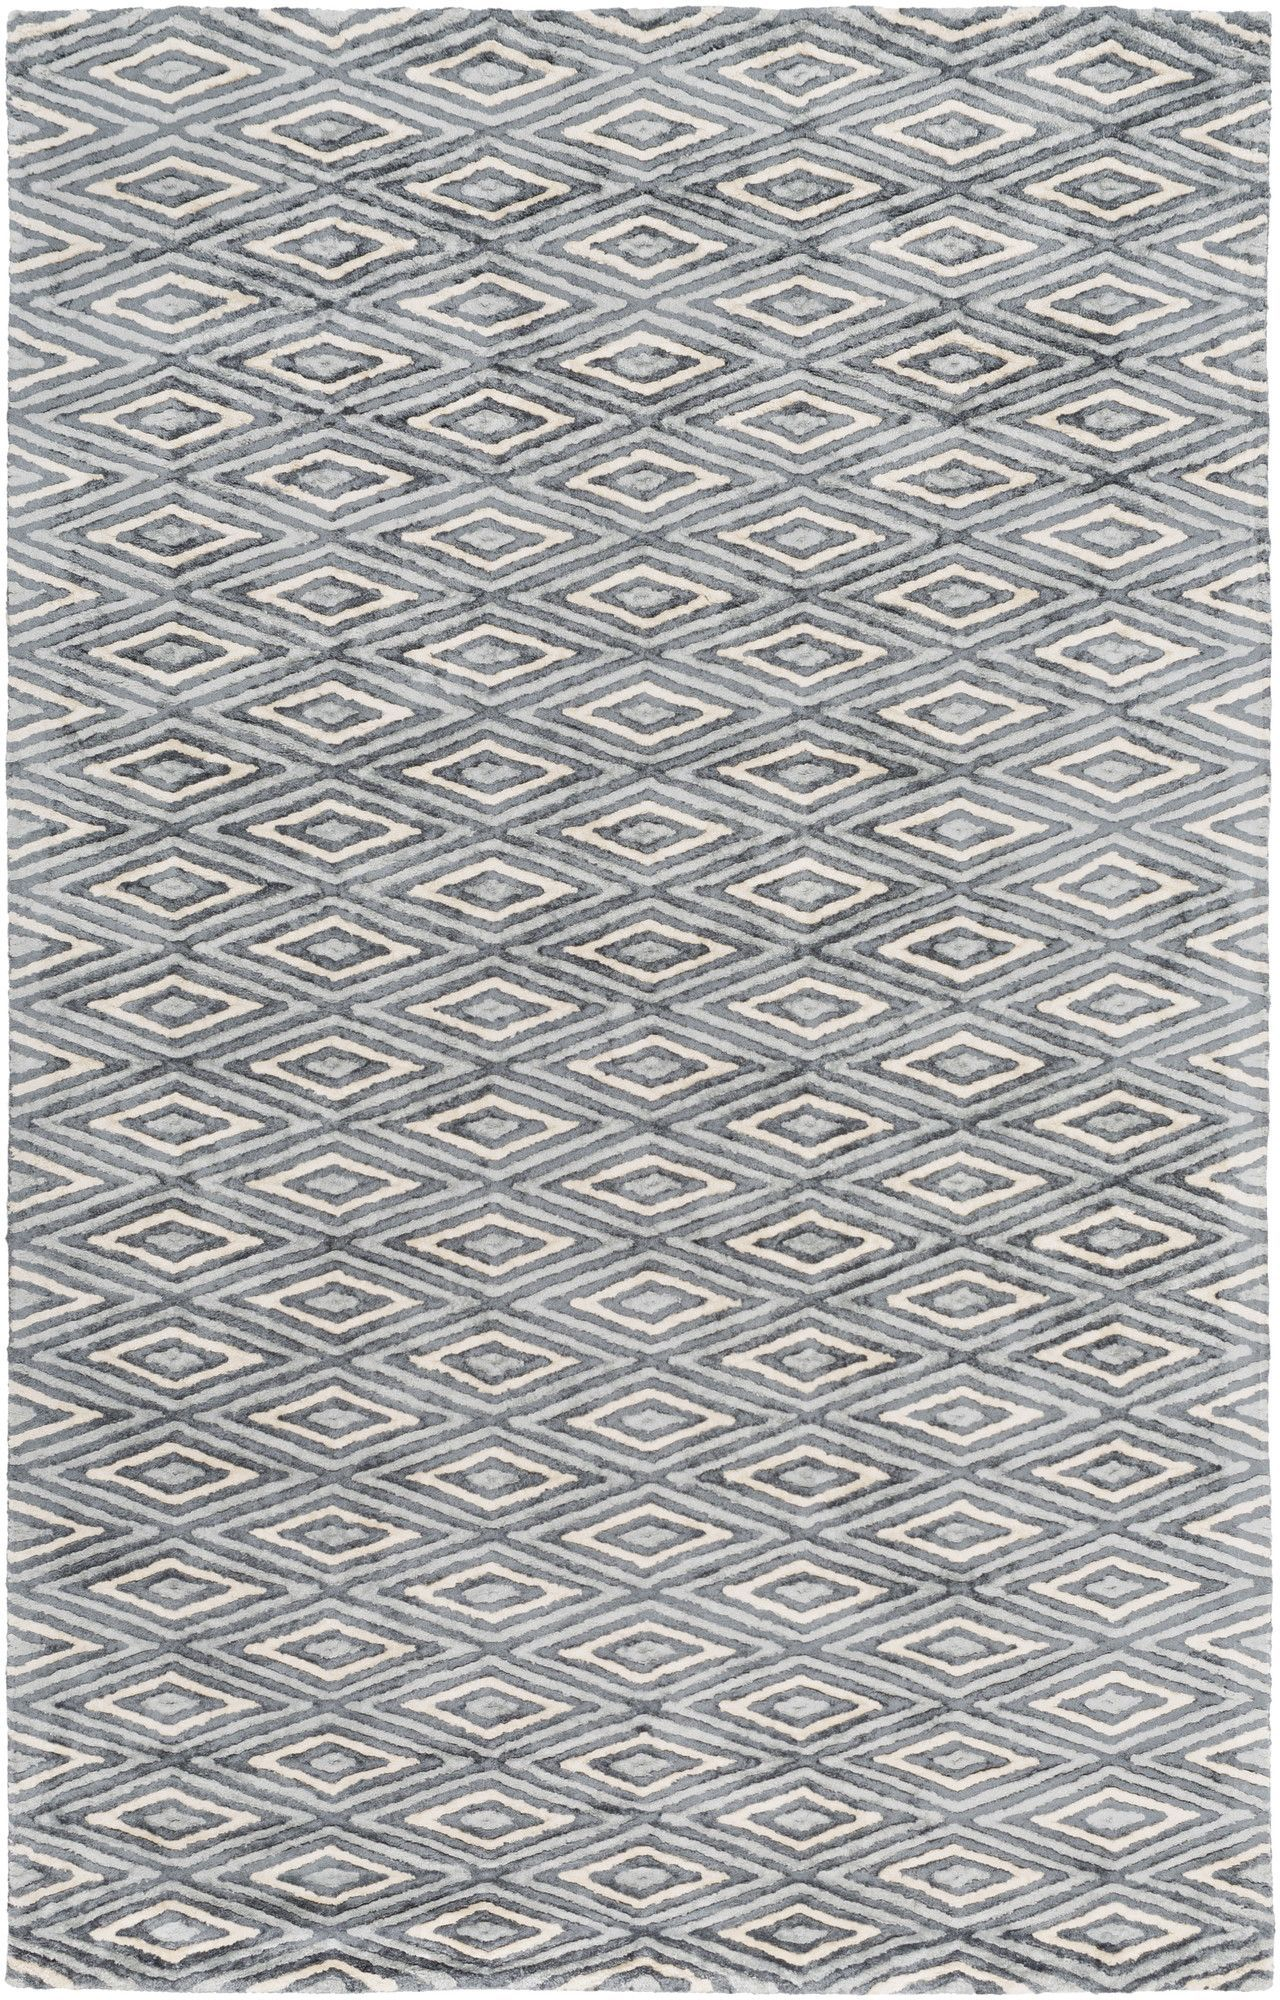 Picabo Hand-Woven Charcoal/Ivory Area Rug